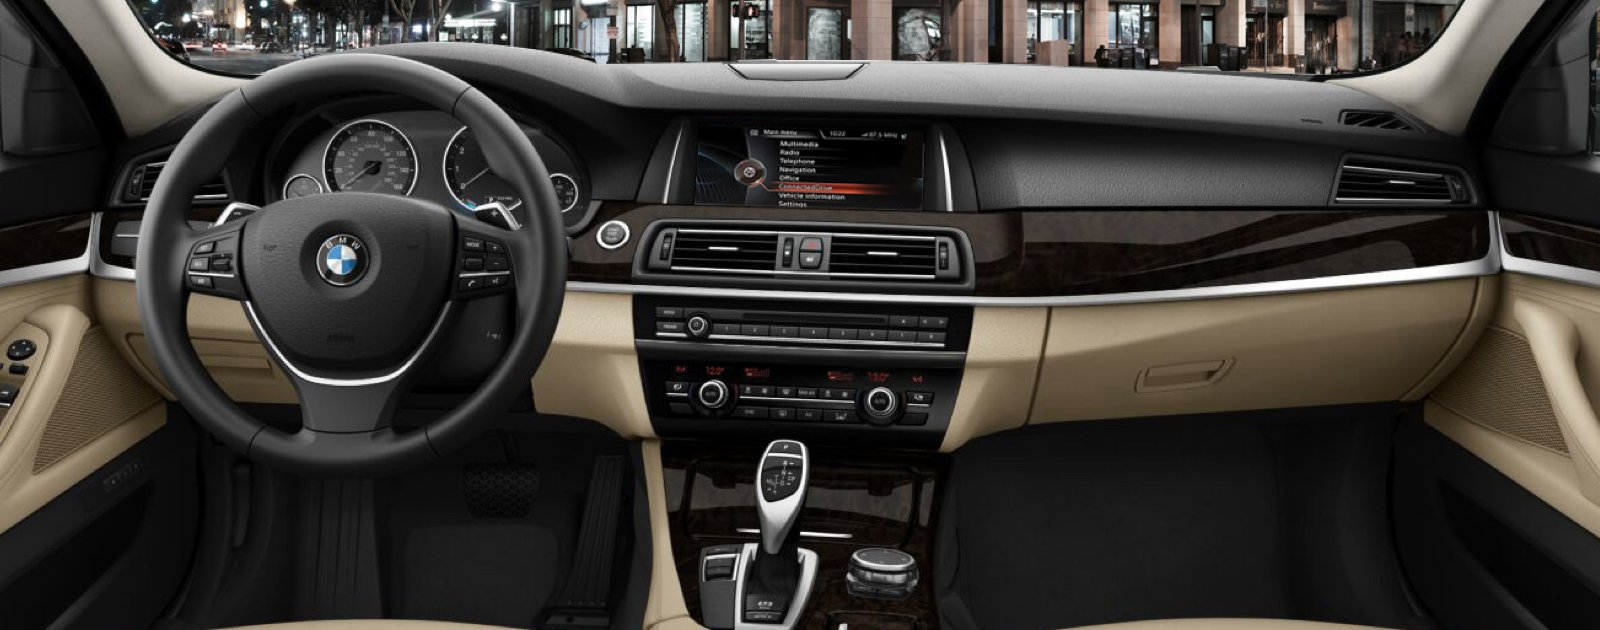 New BMW 5 Series Interior Features